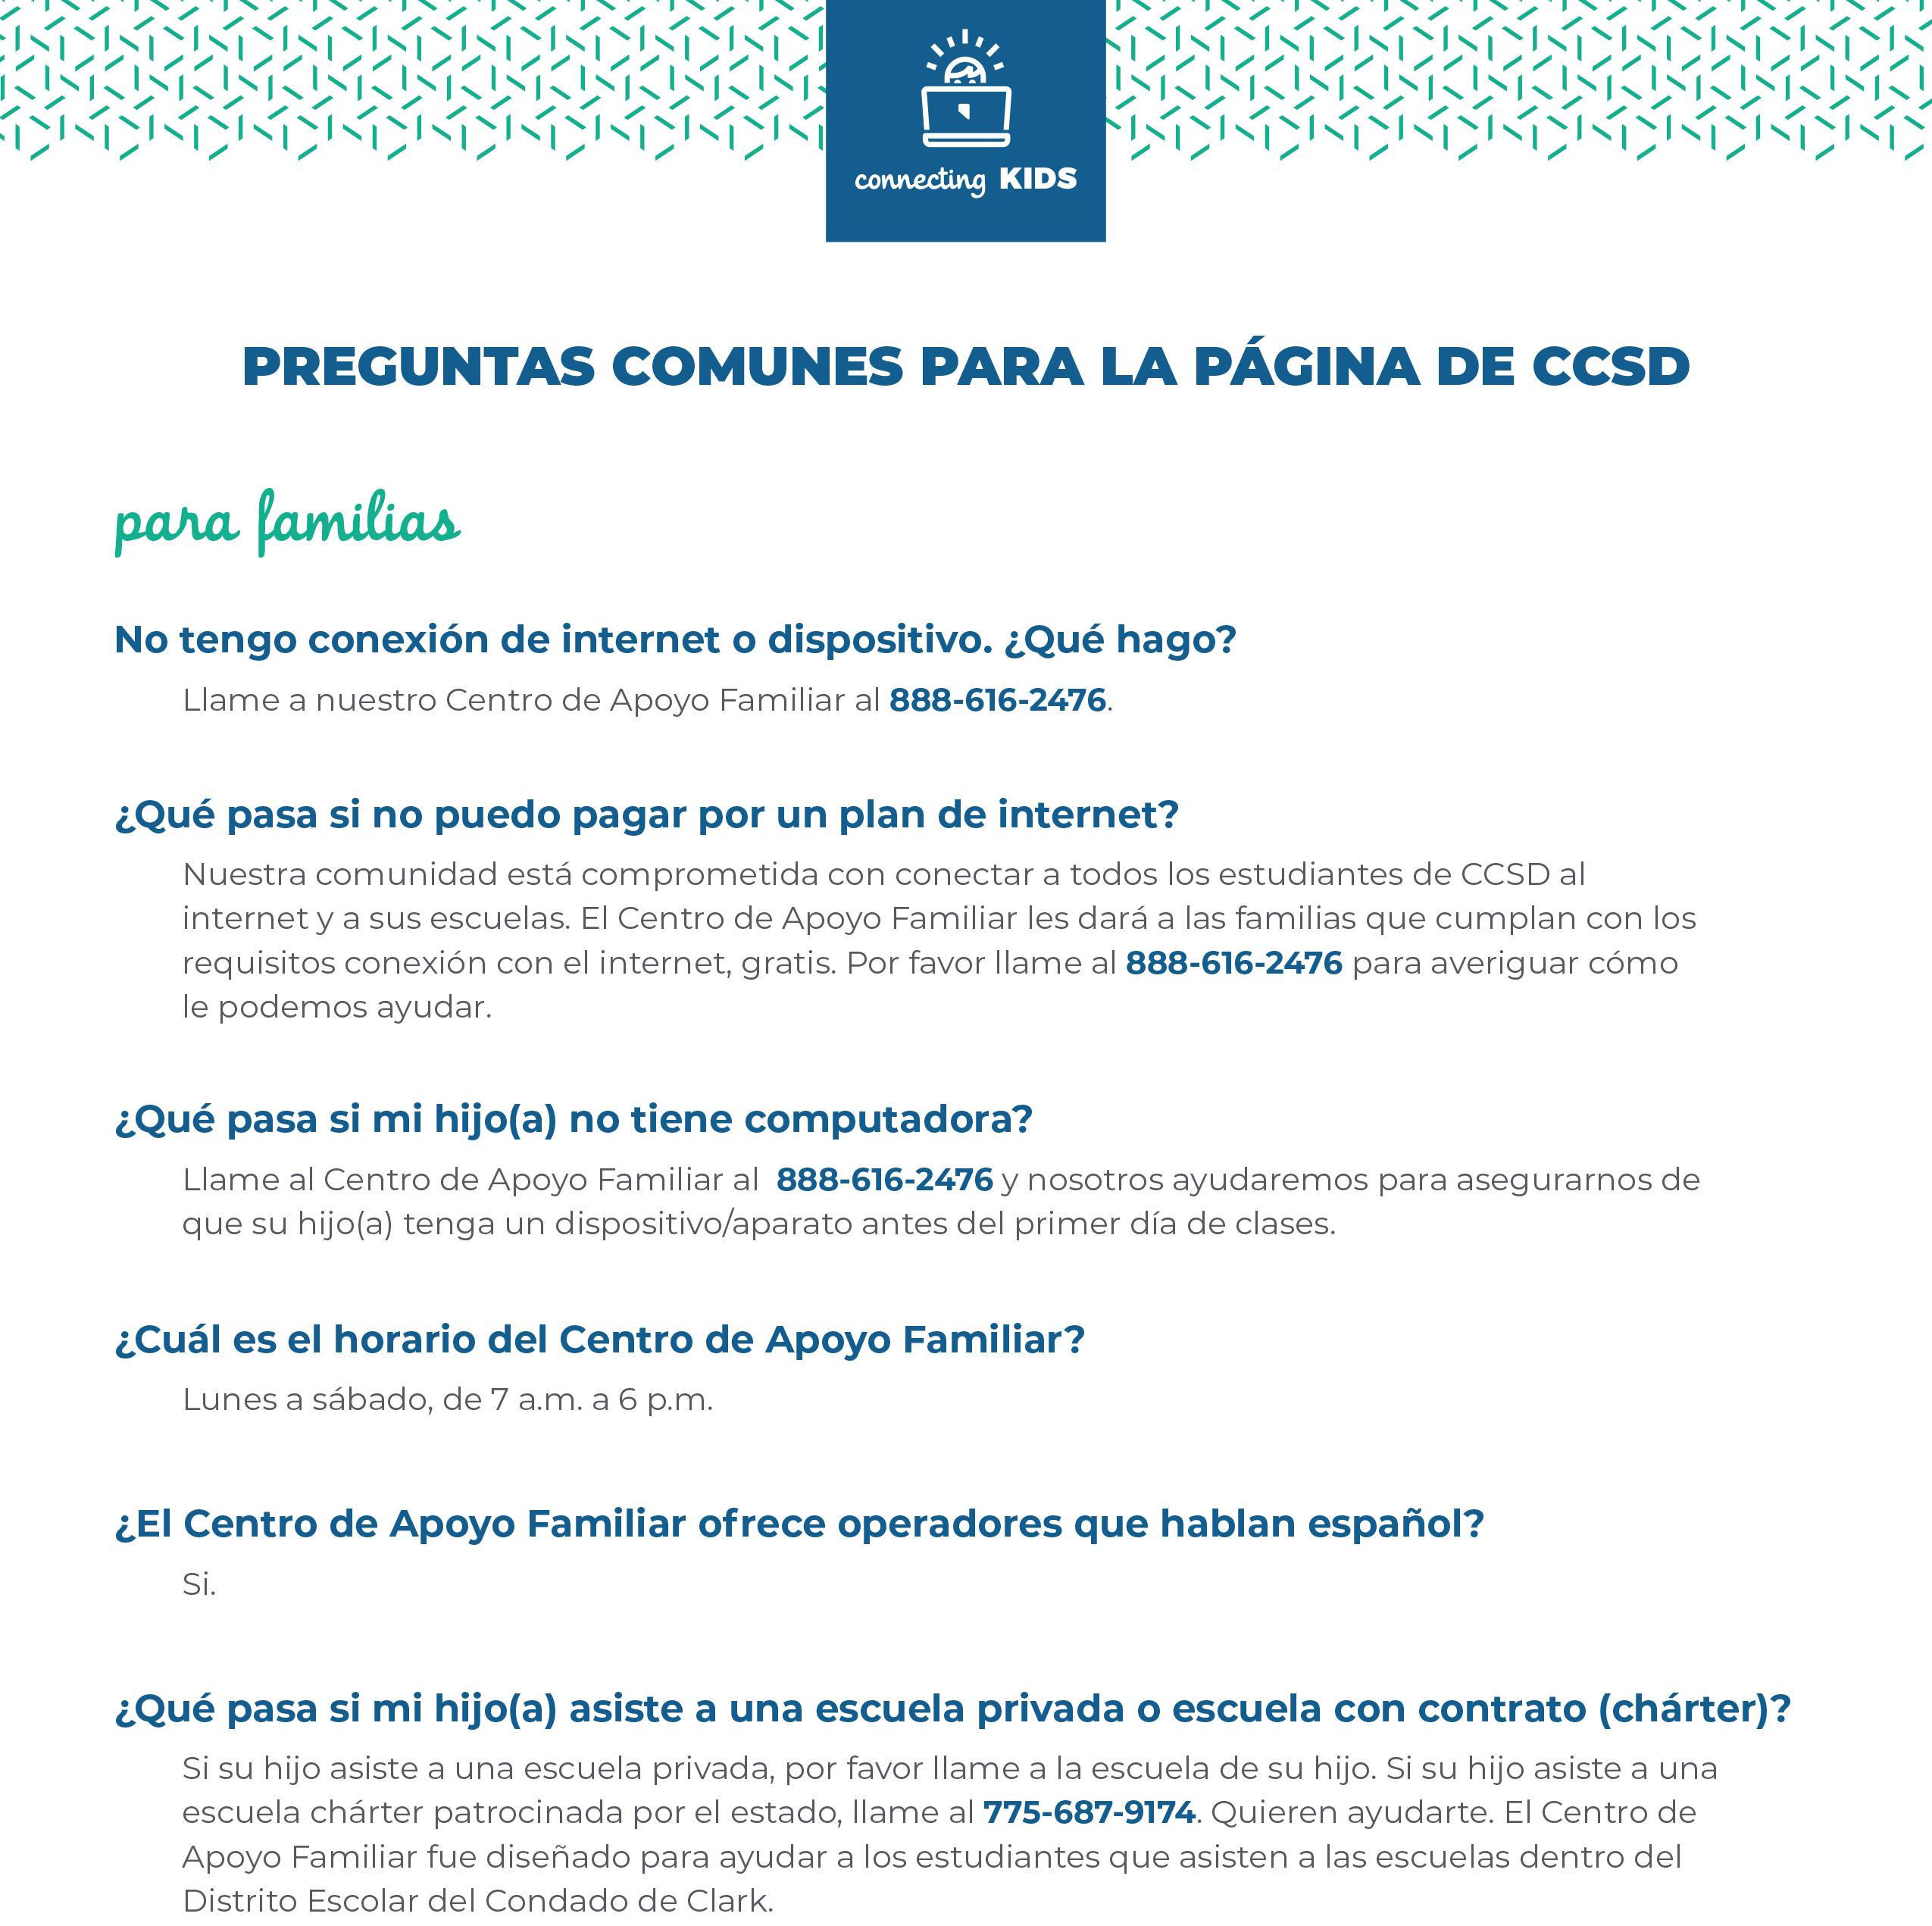 connecting kids faq espanol 1